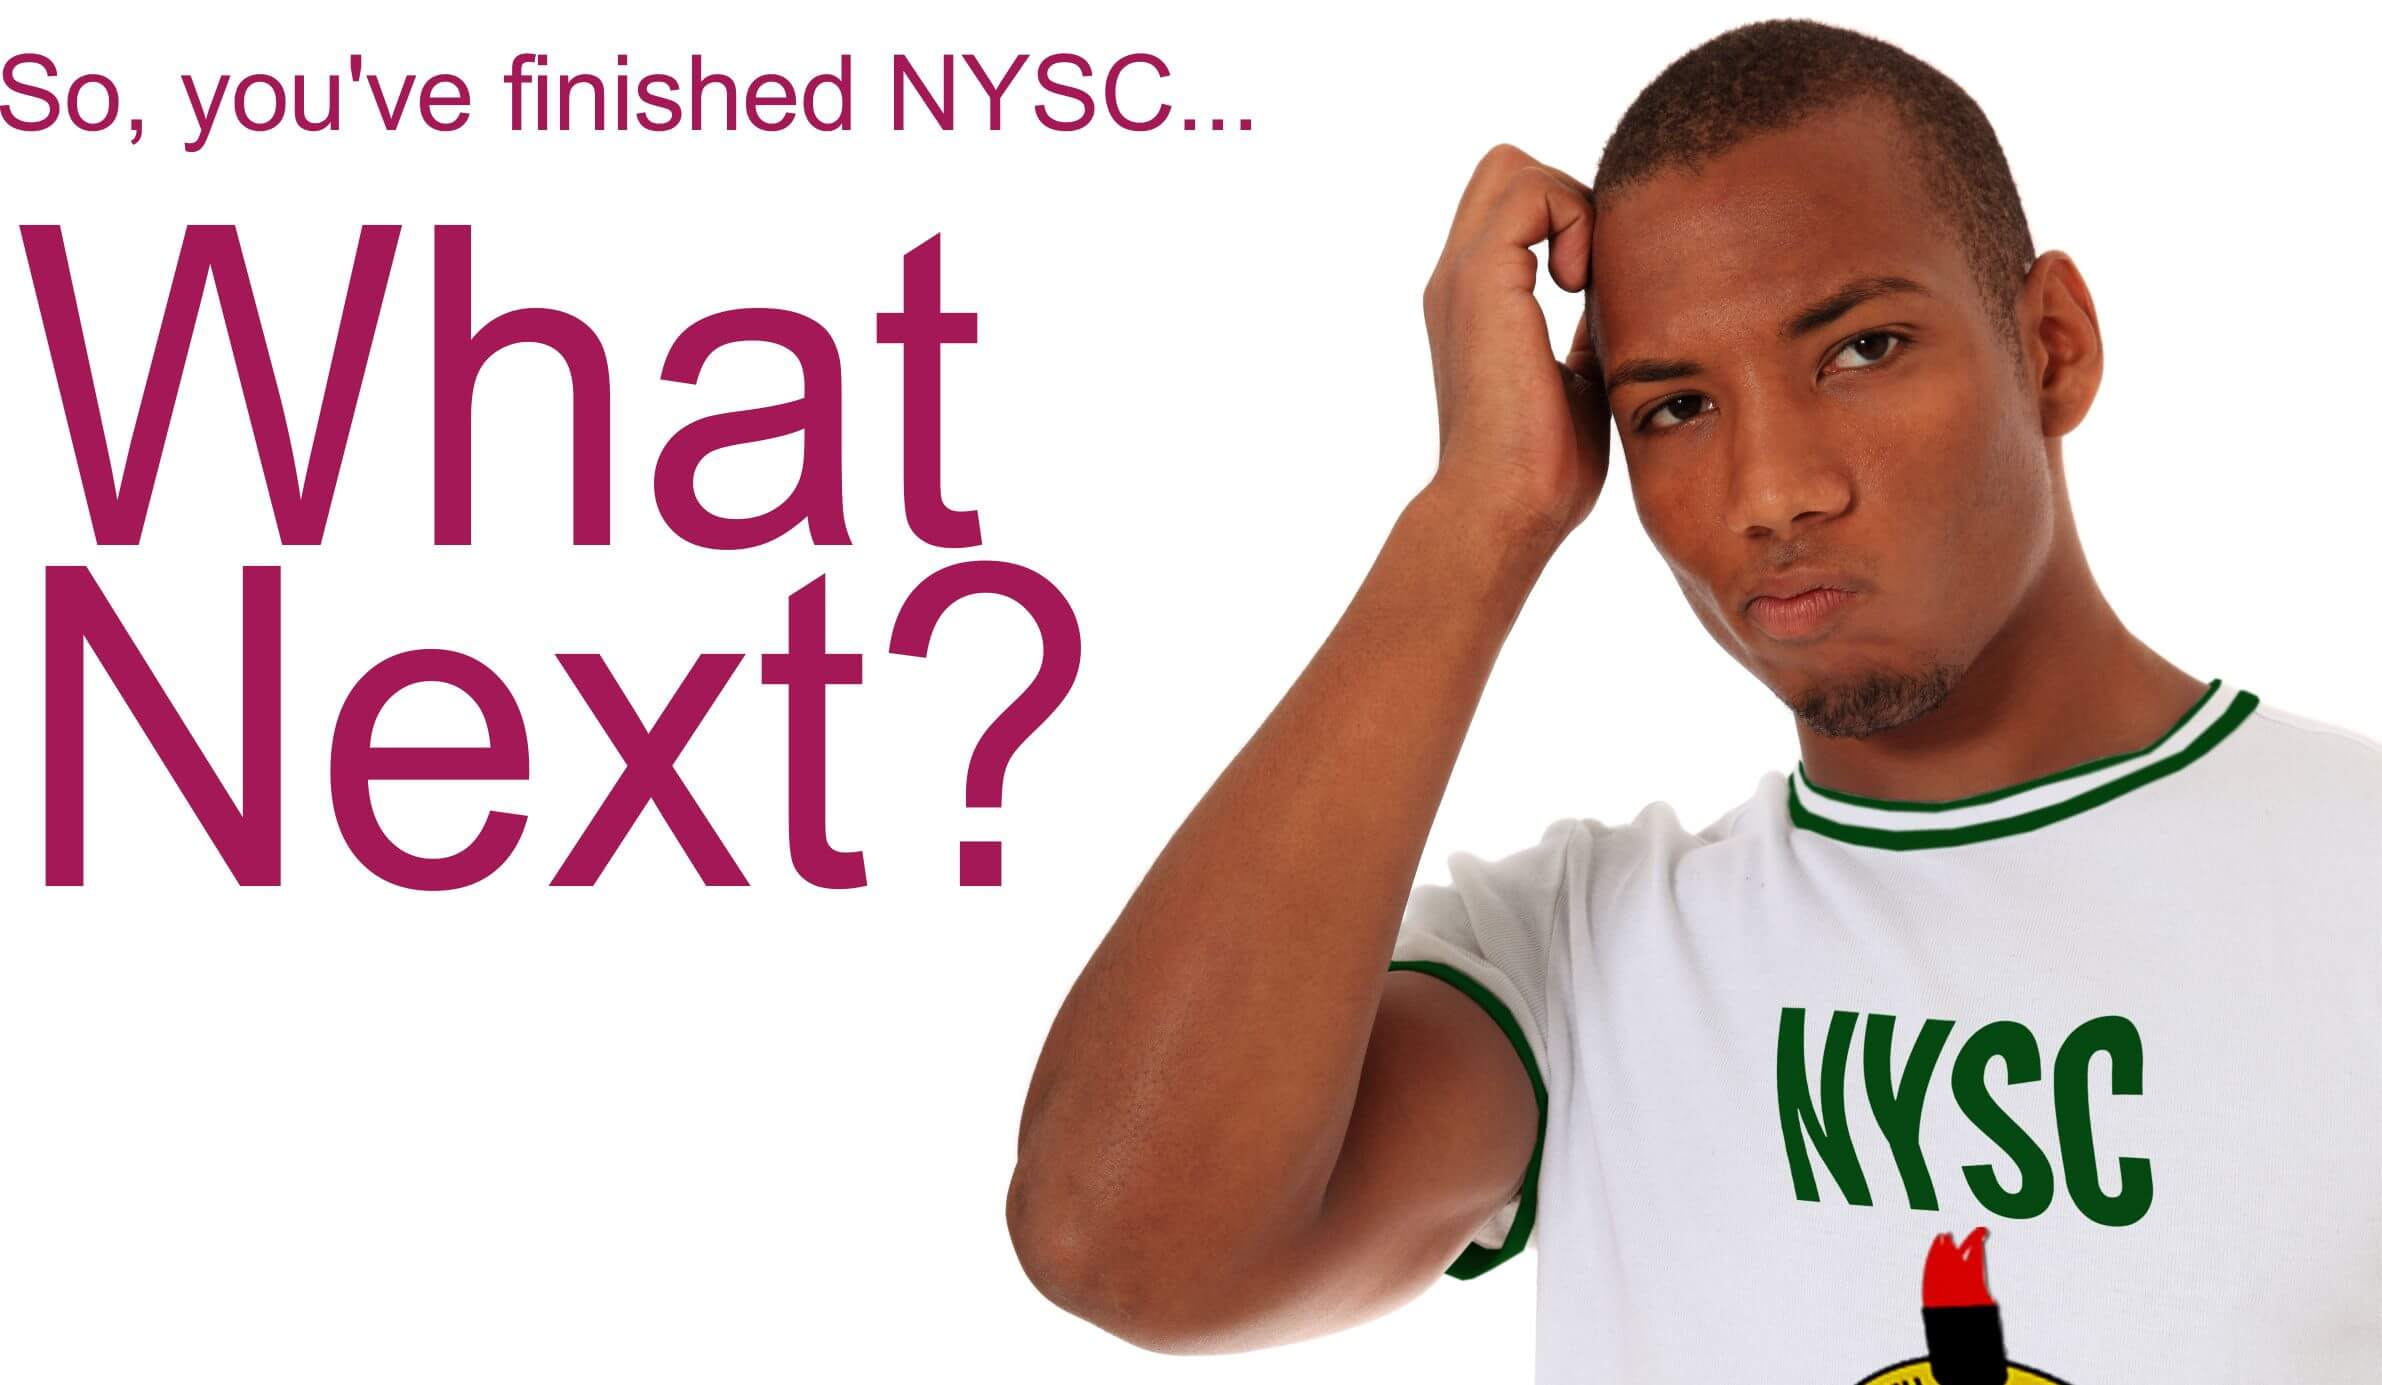 So You've Finished NYSC … What Next?